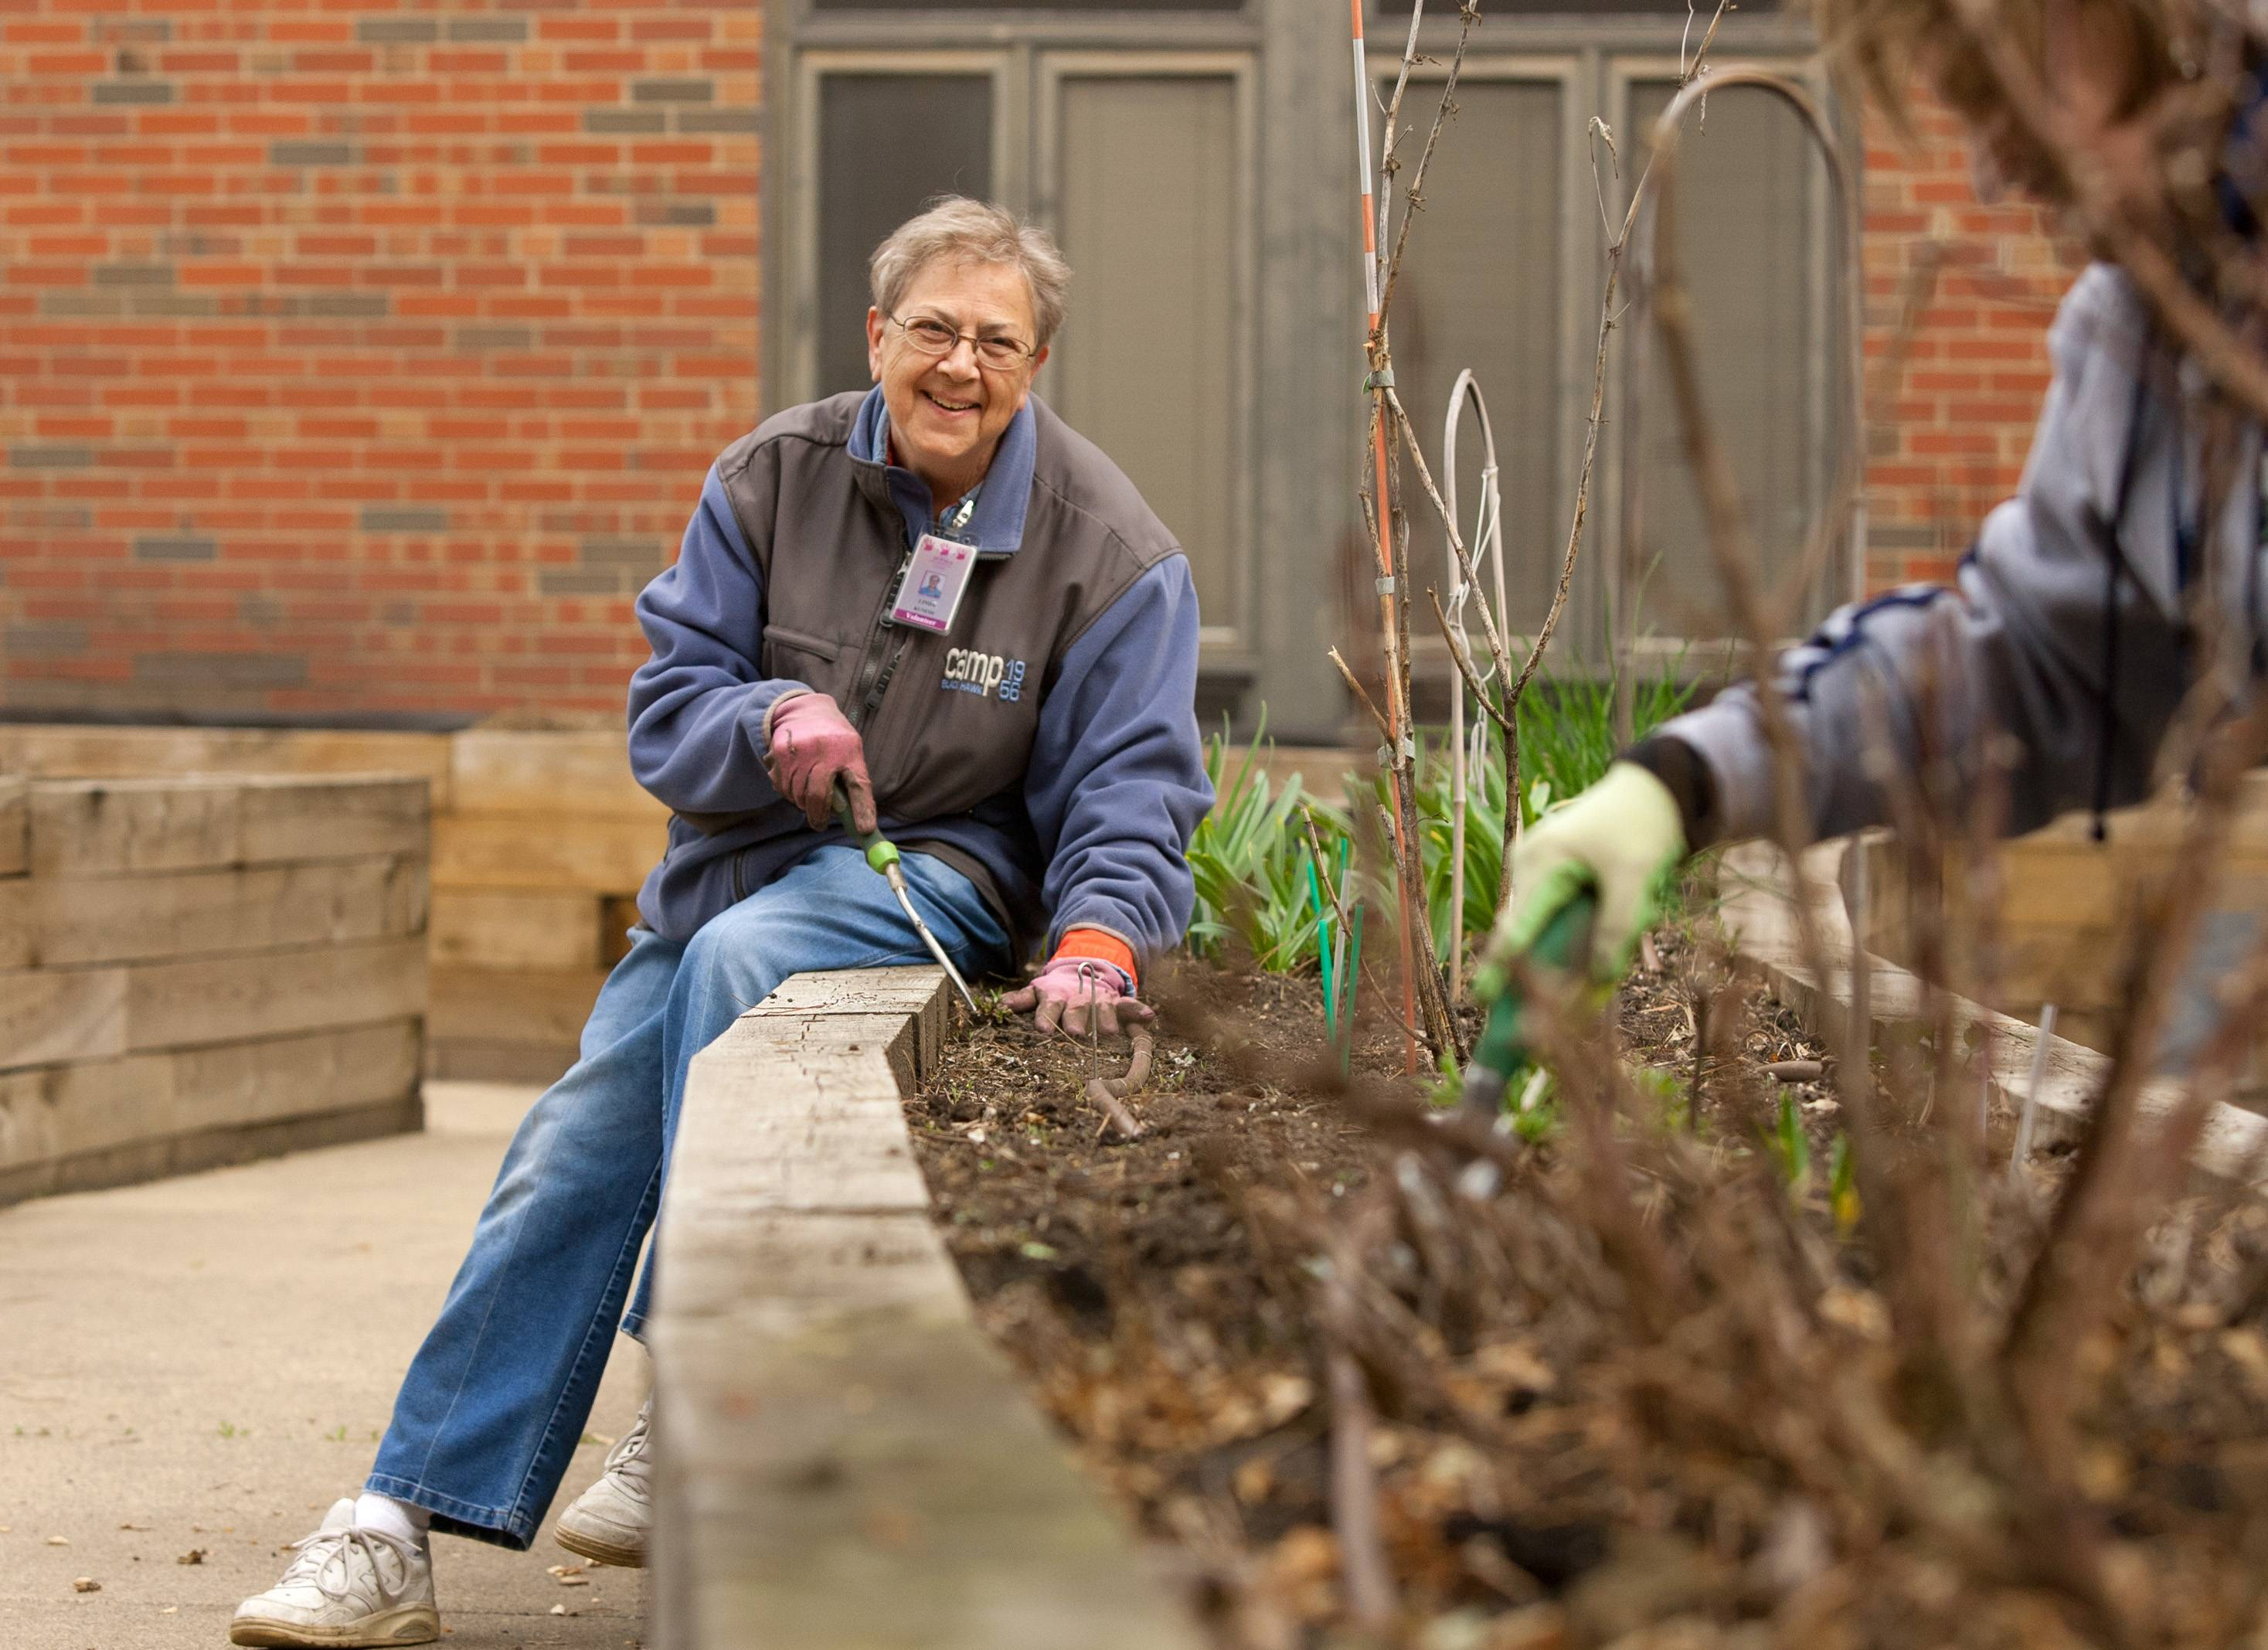 Linda Kunesh of Carol Stream, along with other University of Illinois master gardeners, prepare garden beds at the DuPage Convalescent Center.